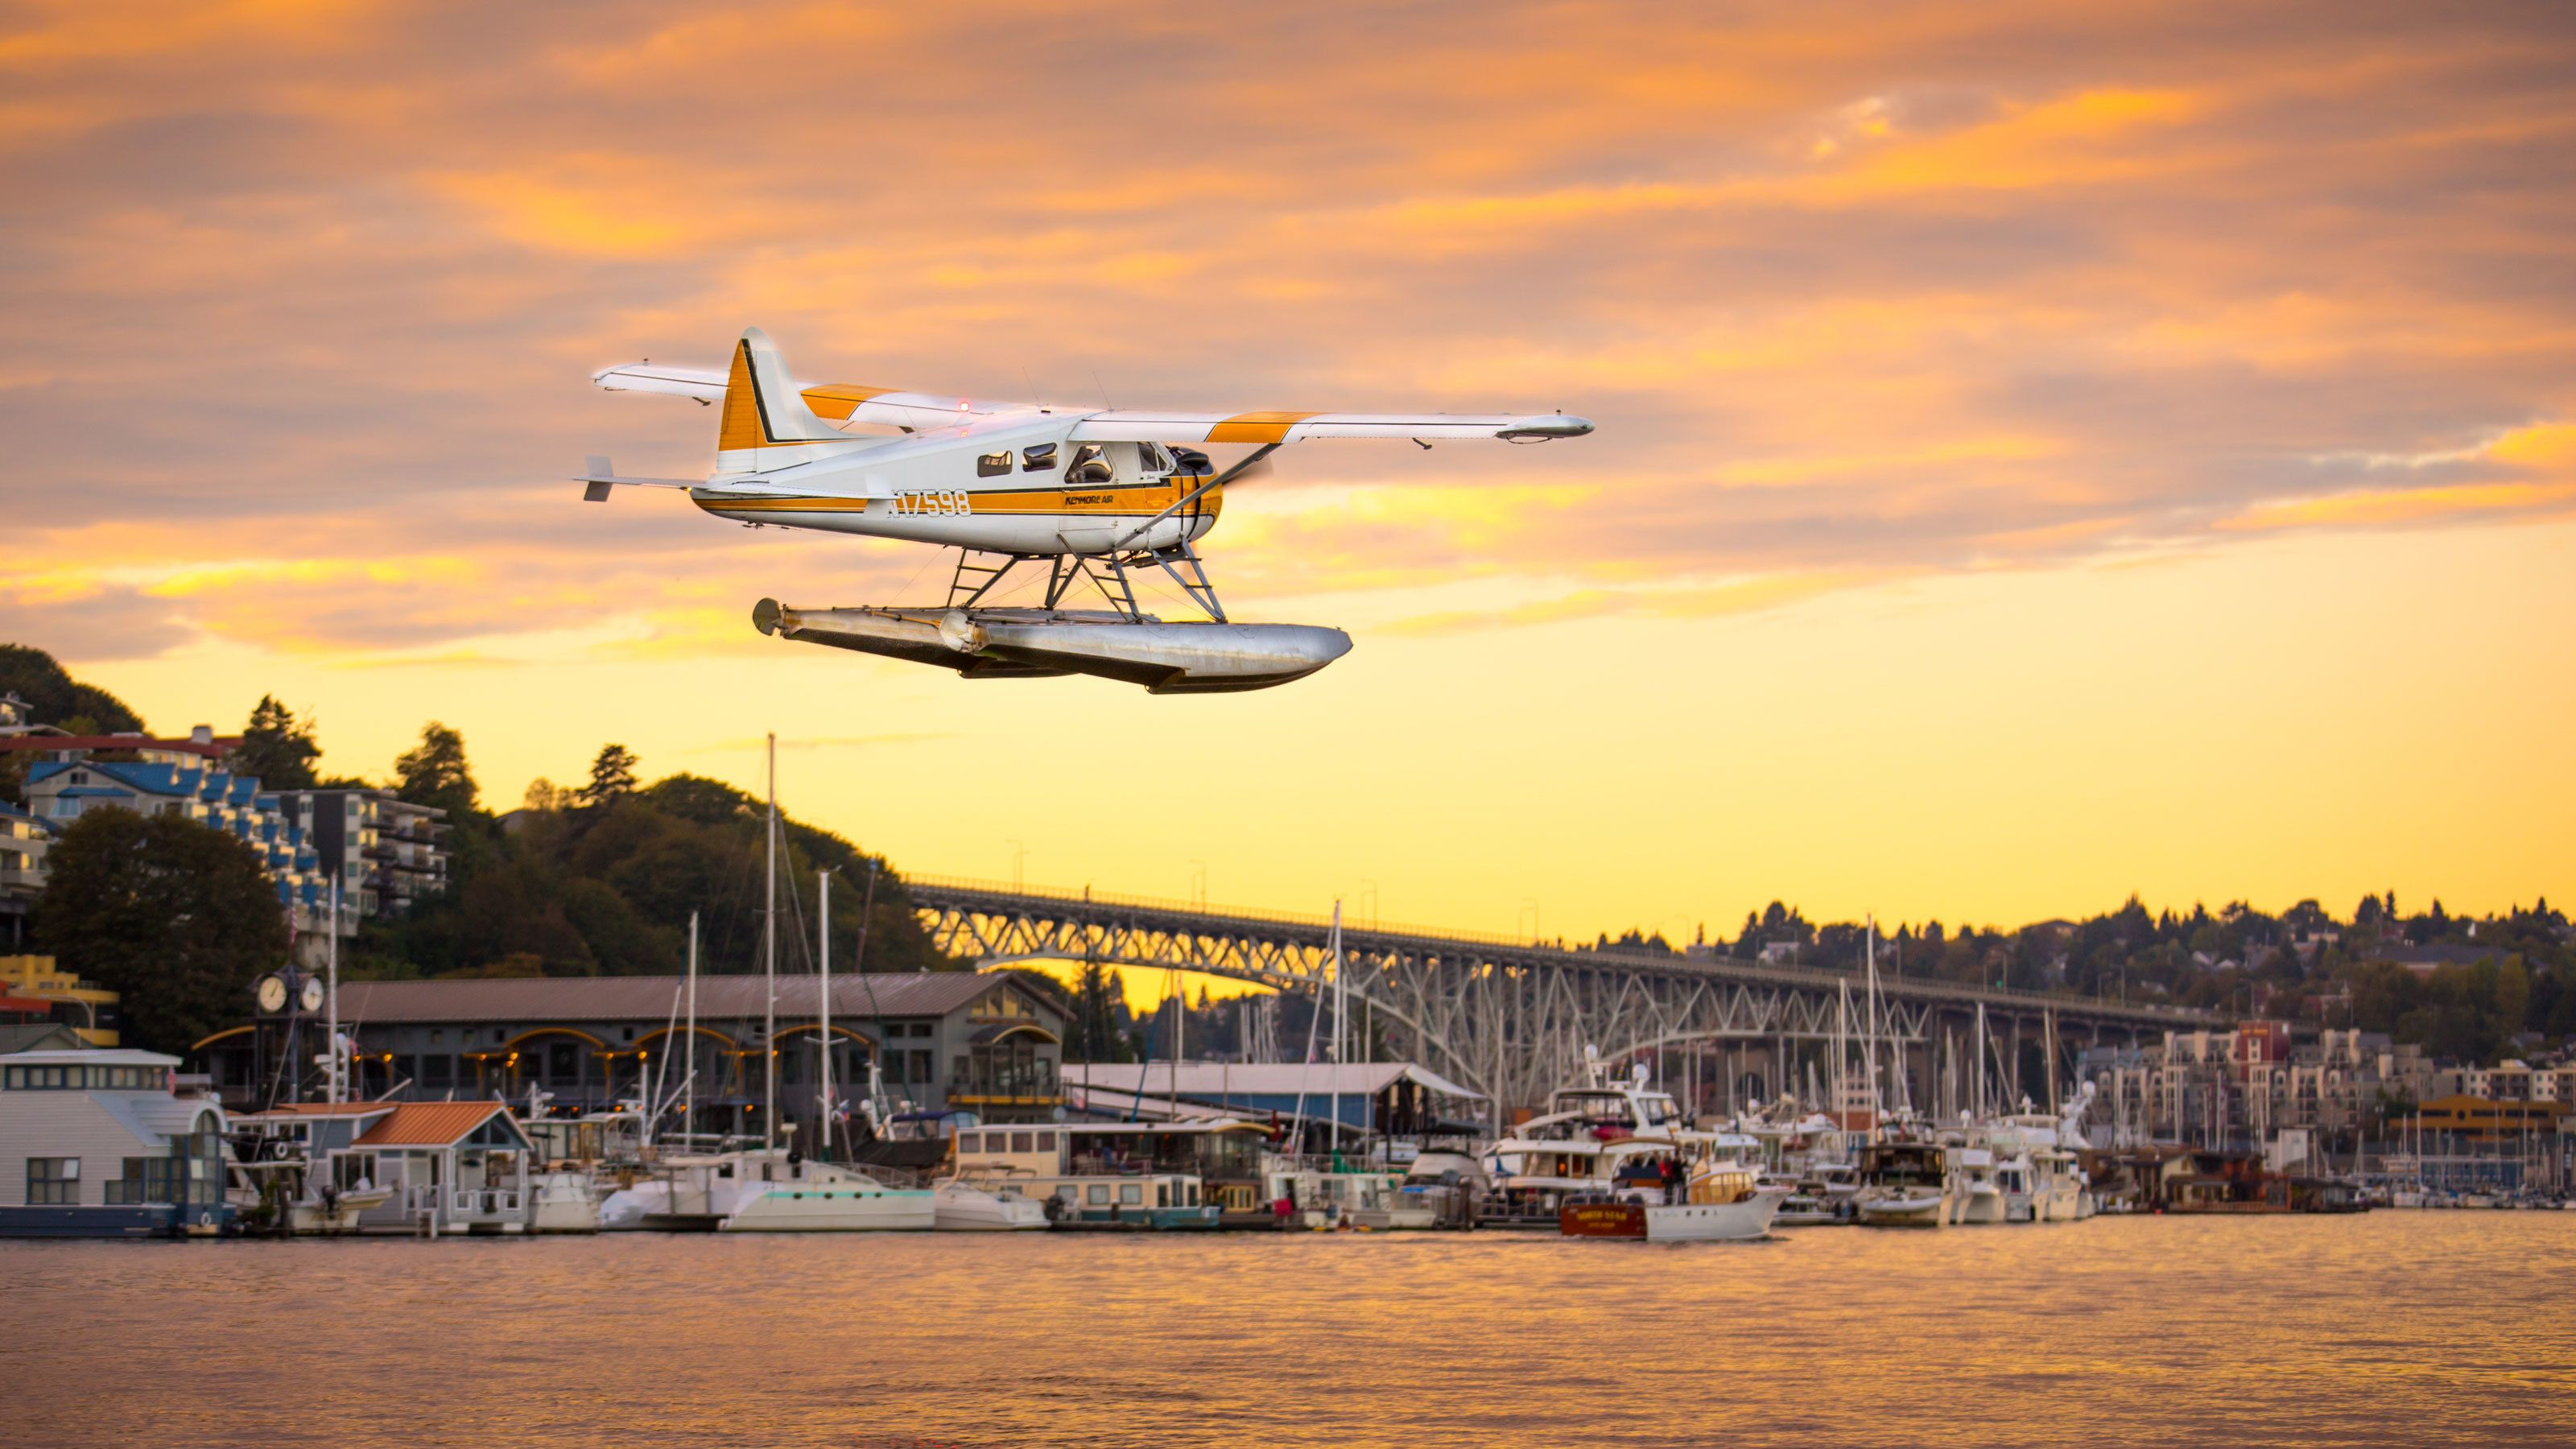 Seaplane preparing to land on the Harbor in Seattle